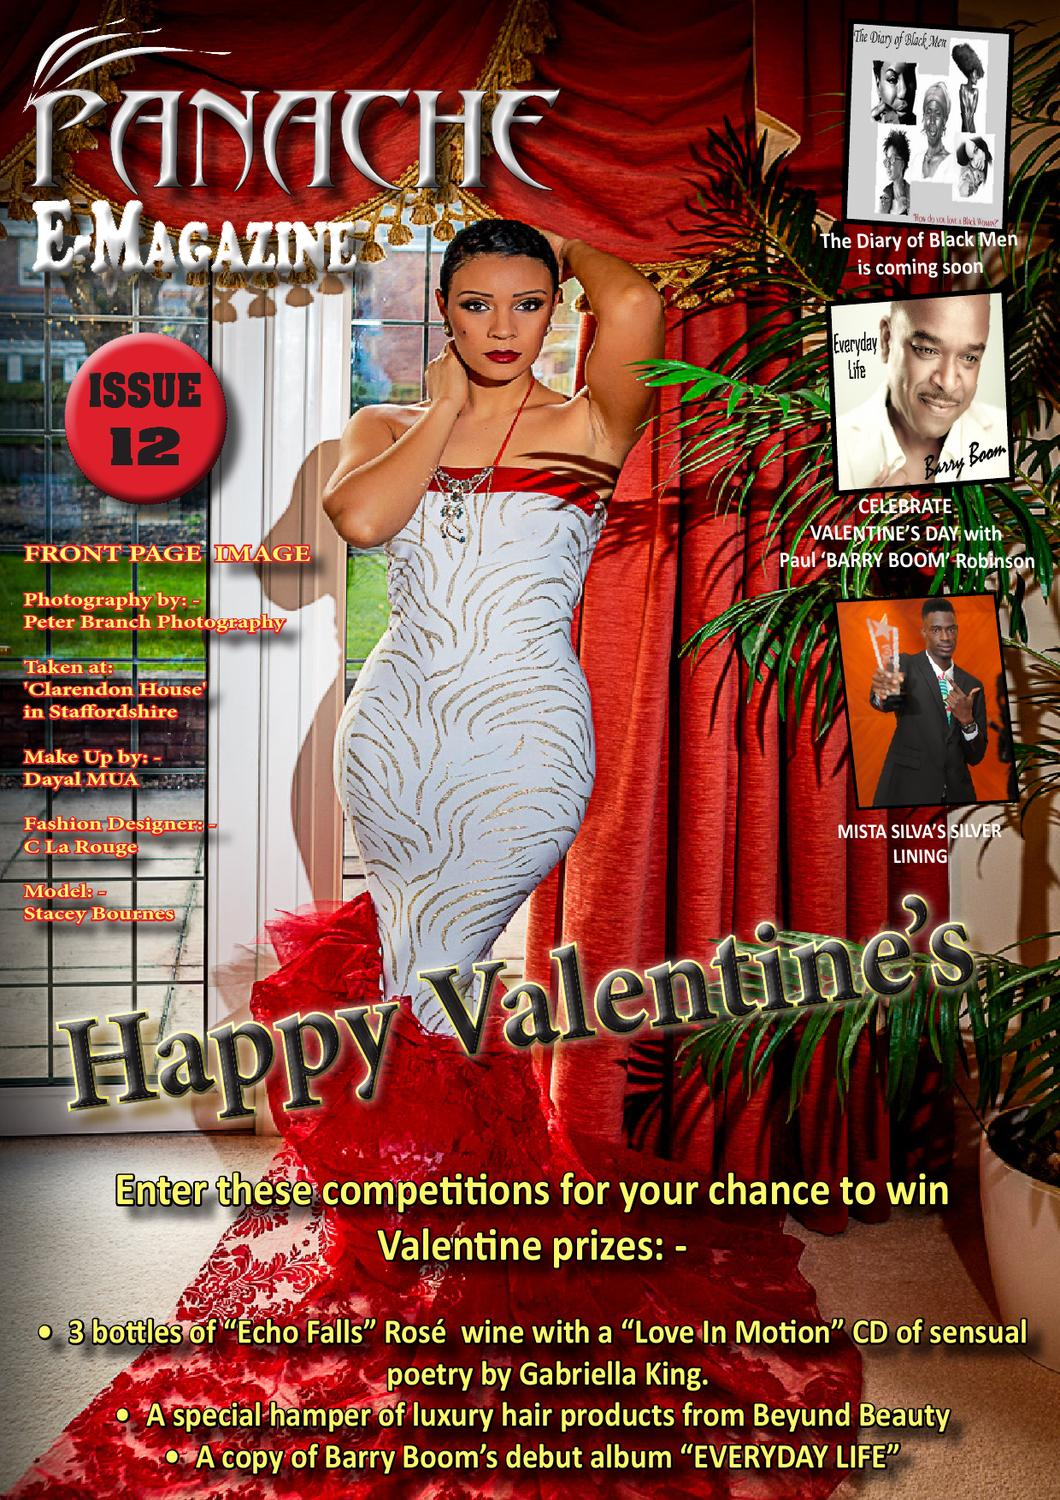 Issue 12 By Panache Occasions Limited